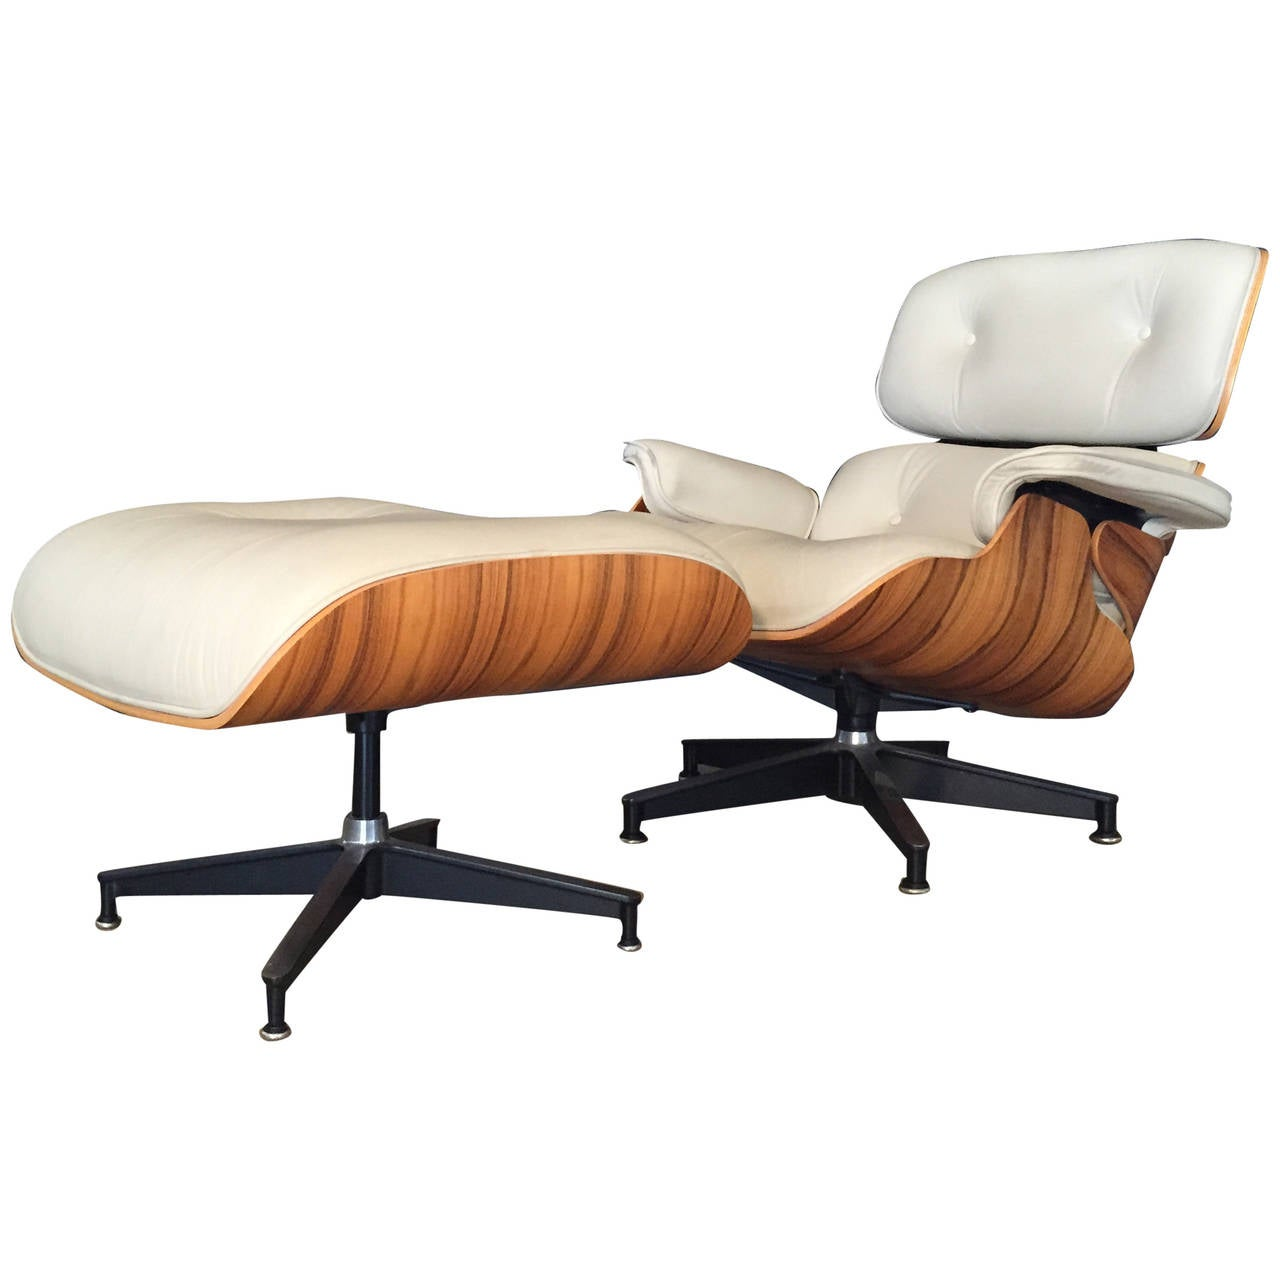 eames lounge chair by herman miller in rare off white. Black Bedroom Furniture Sets. Home Design Ideas